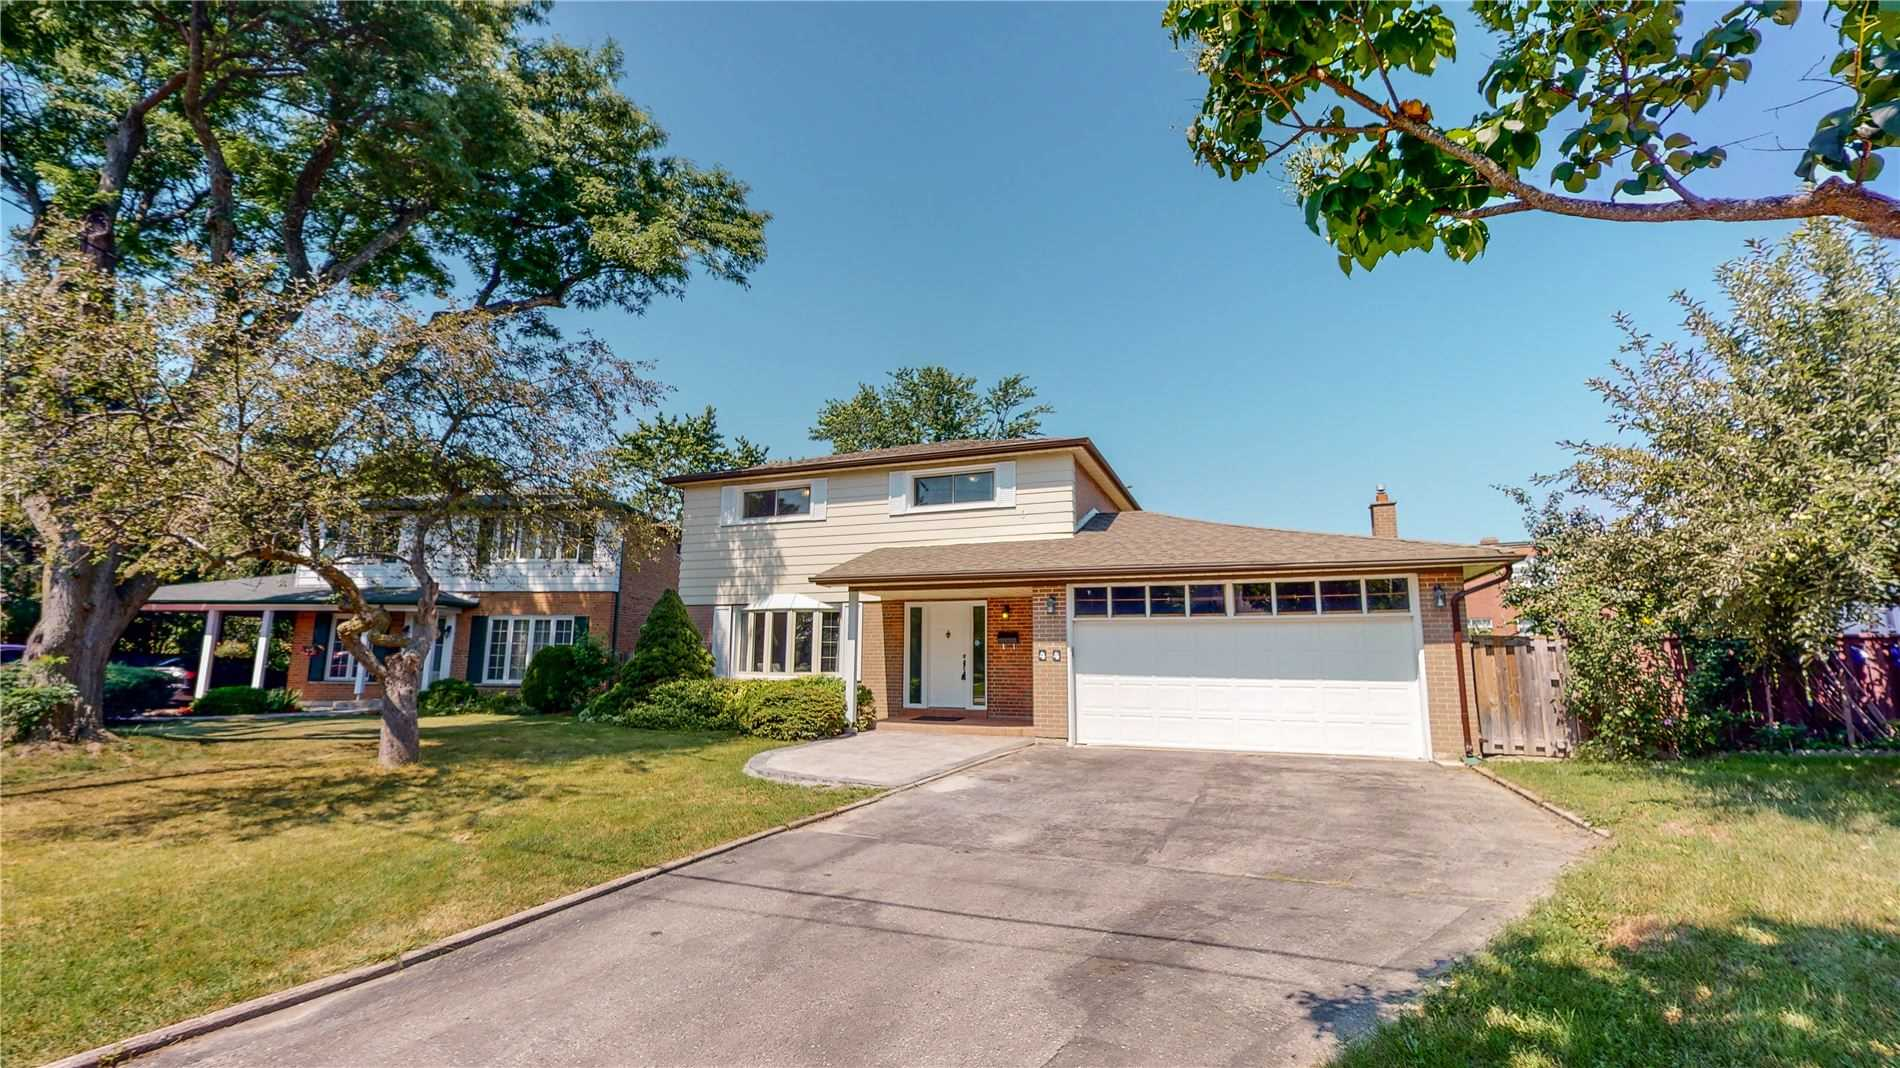 Detached house For Sale In Toronto - 44 Gleneagle Cres, Toronto, Ontario, Canada M2J3H3 , 4 Bedrooms Bedrooms, ,3 BathroomsBathrooms,Detached,For Sale,Gleneagle